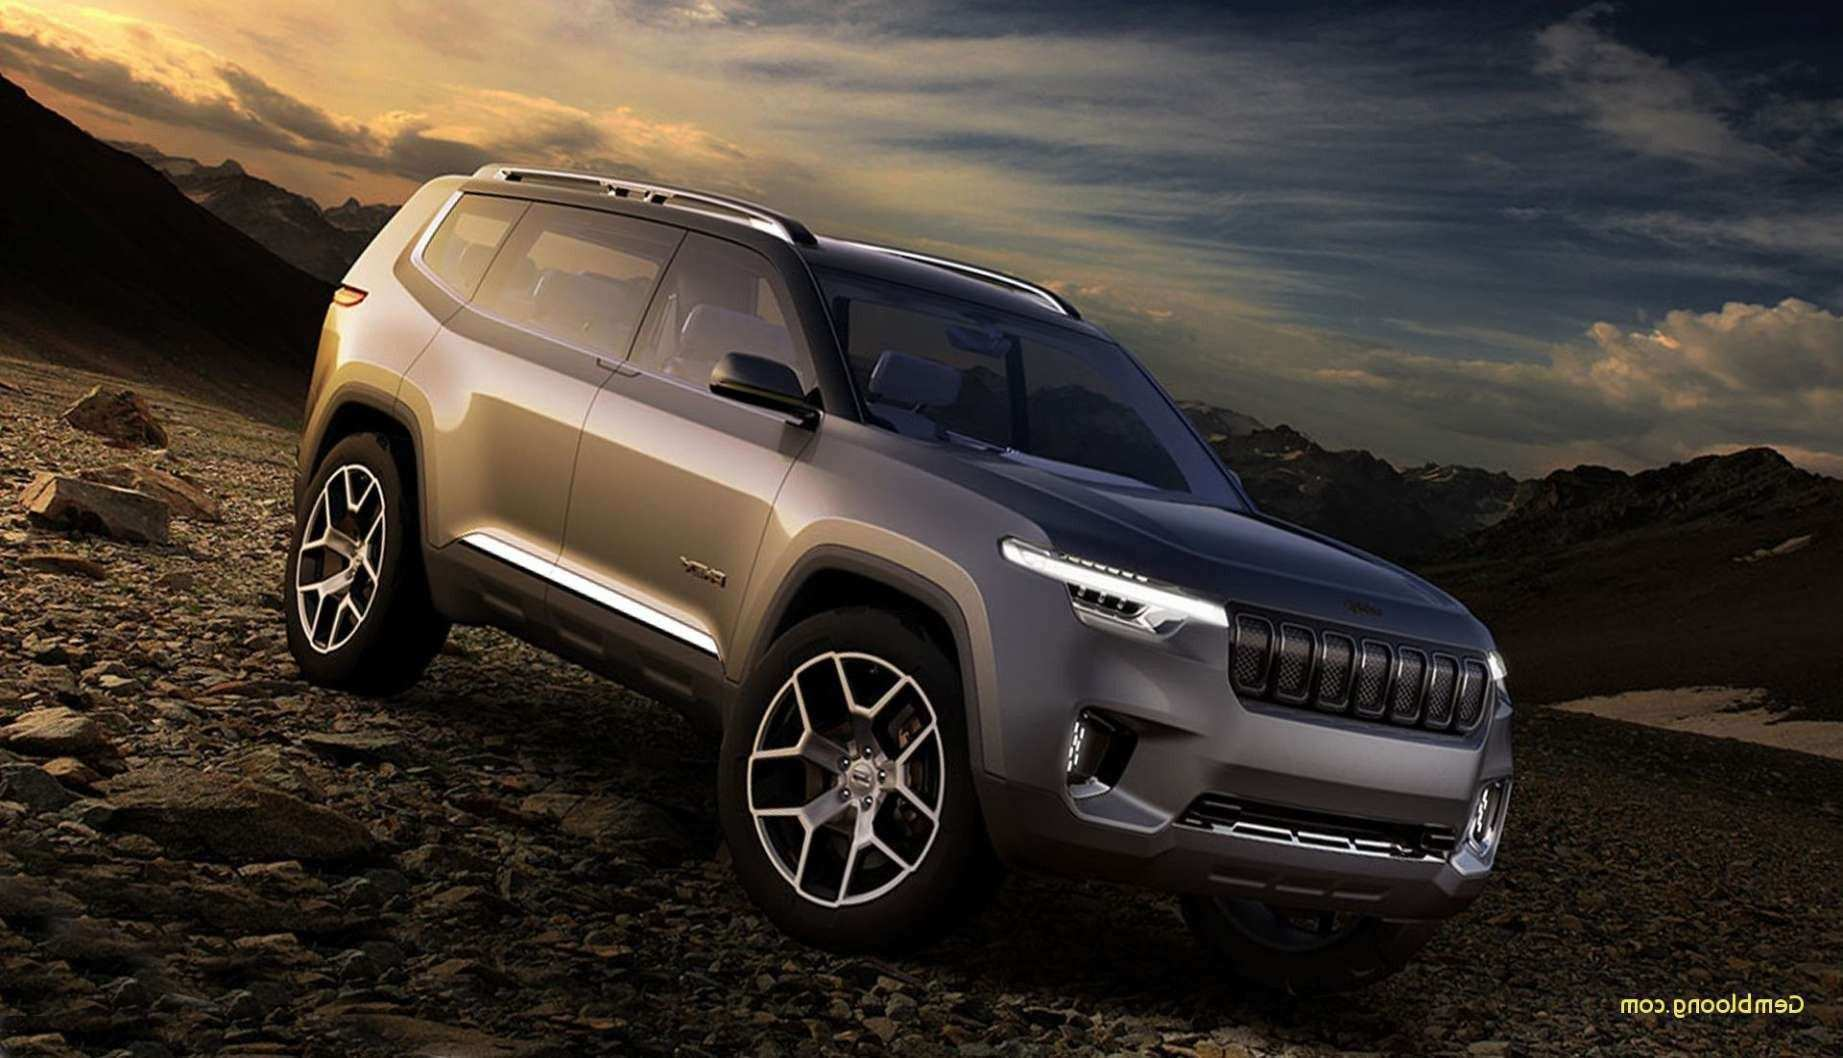 93 All New 2020 Grand Cherokee Prices with 2020 Grand Cherokee